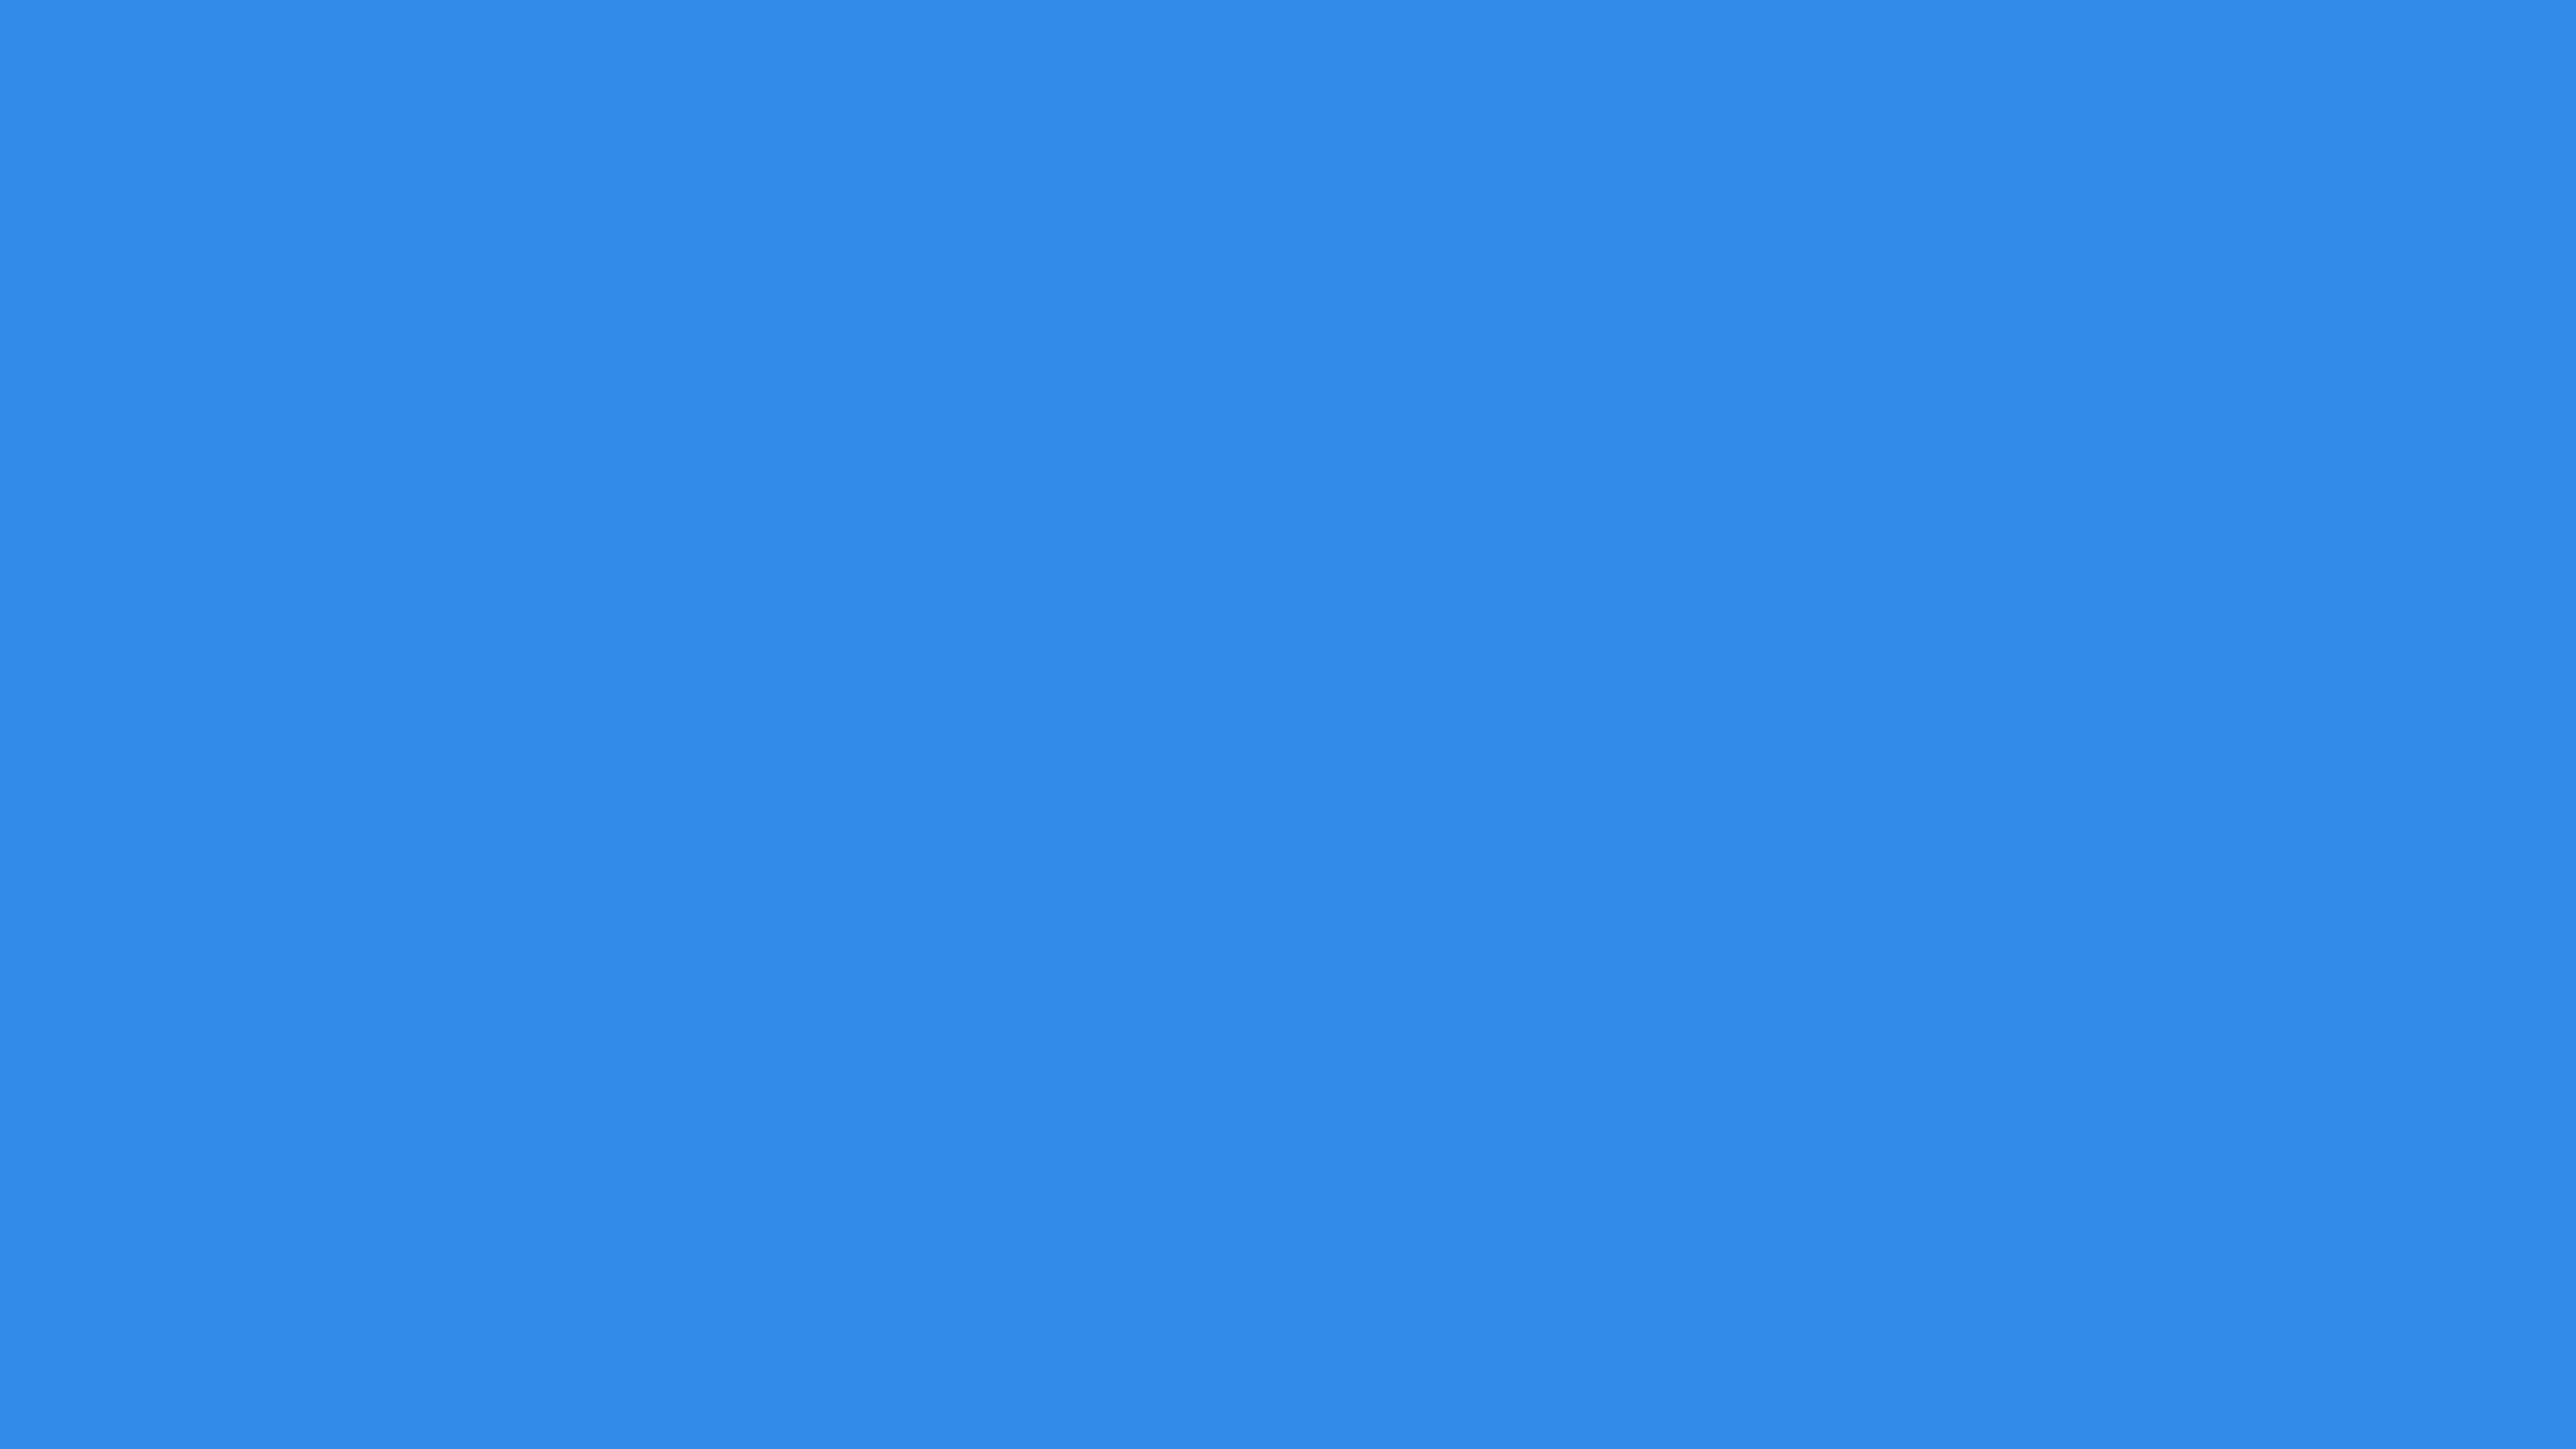 4096x2304 Bleu De France Solid Color Background